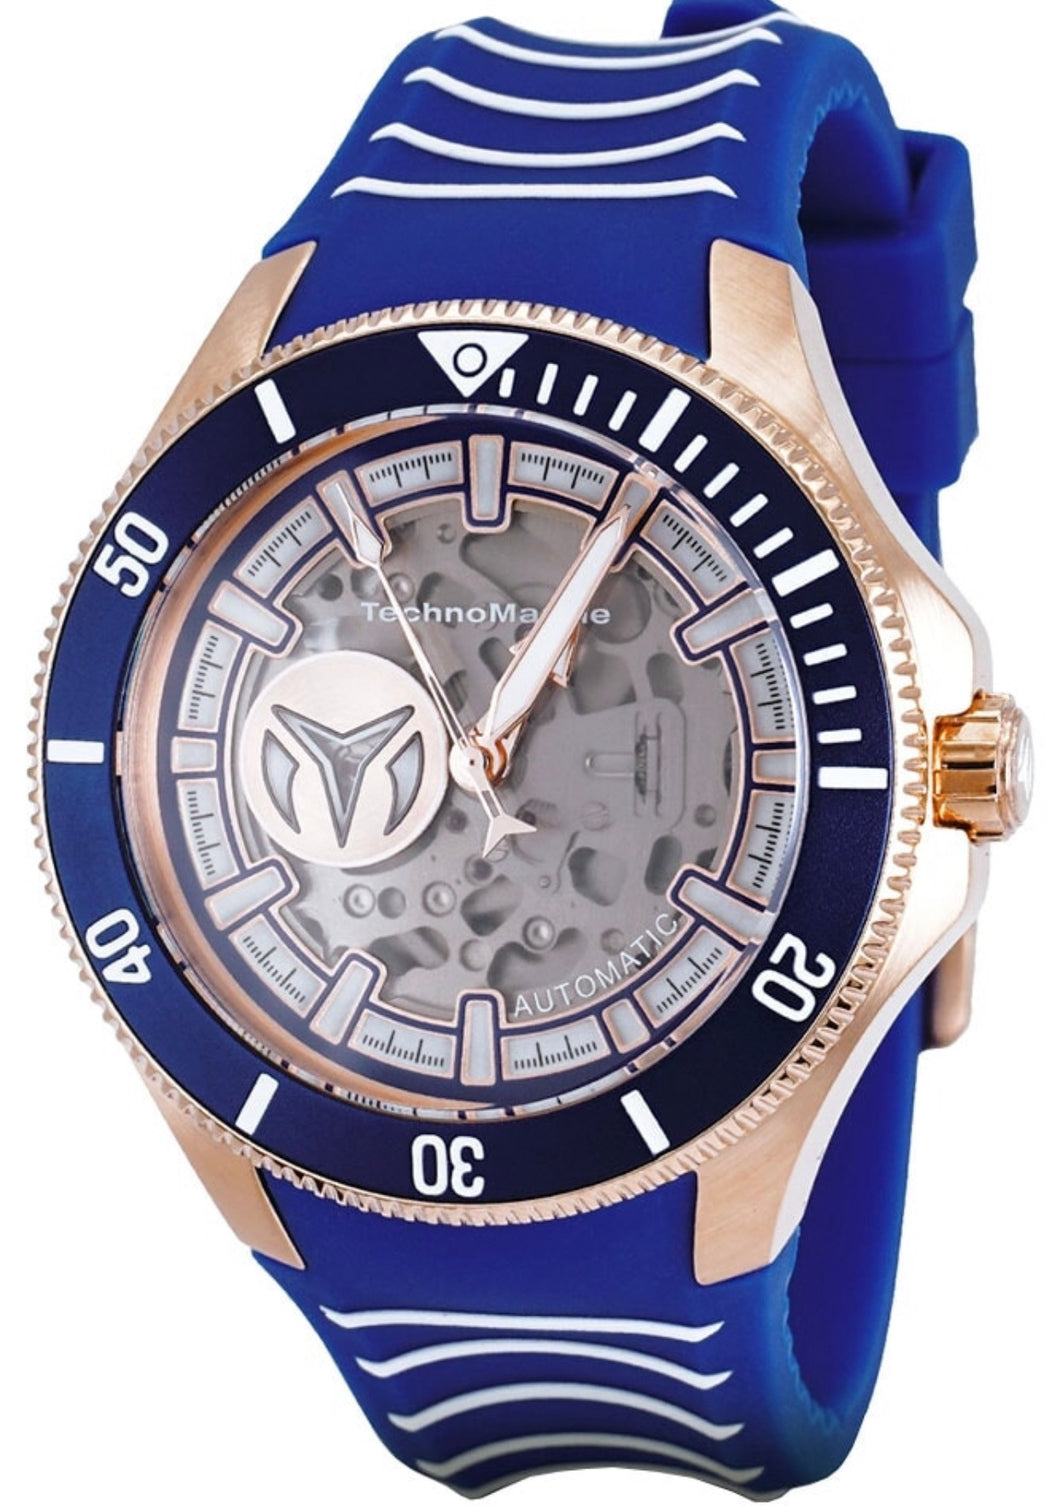 TECHNOMARINE CRUISE MENS AUTOMATIC 47 MM ROSE GOLD CASE BLUE, TRANSPARENT DIAL - MODEL TM-118024 - Boutique Watches & More